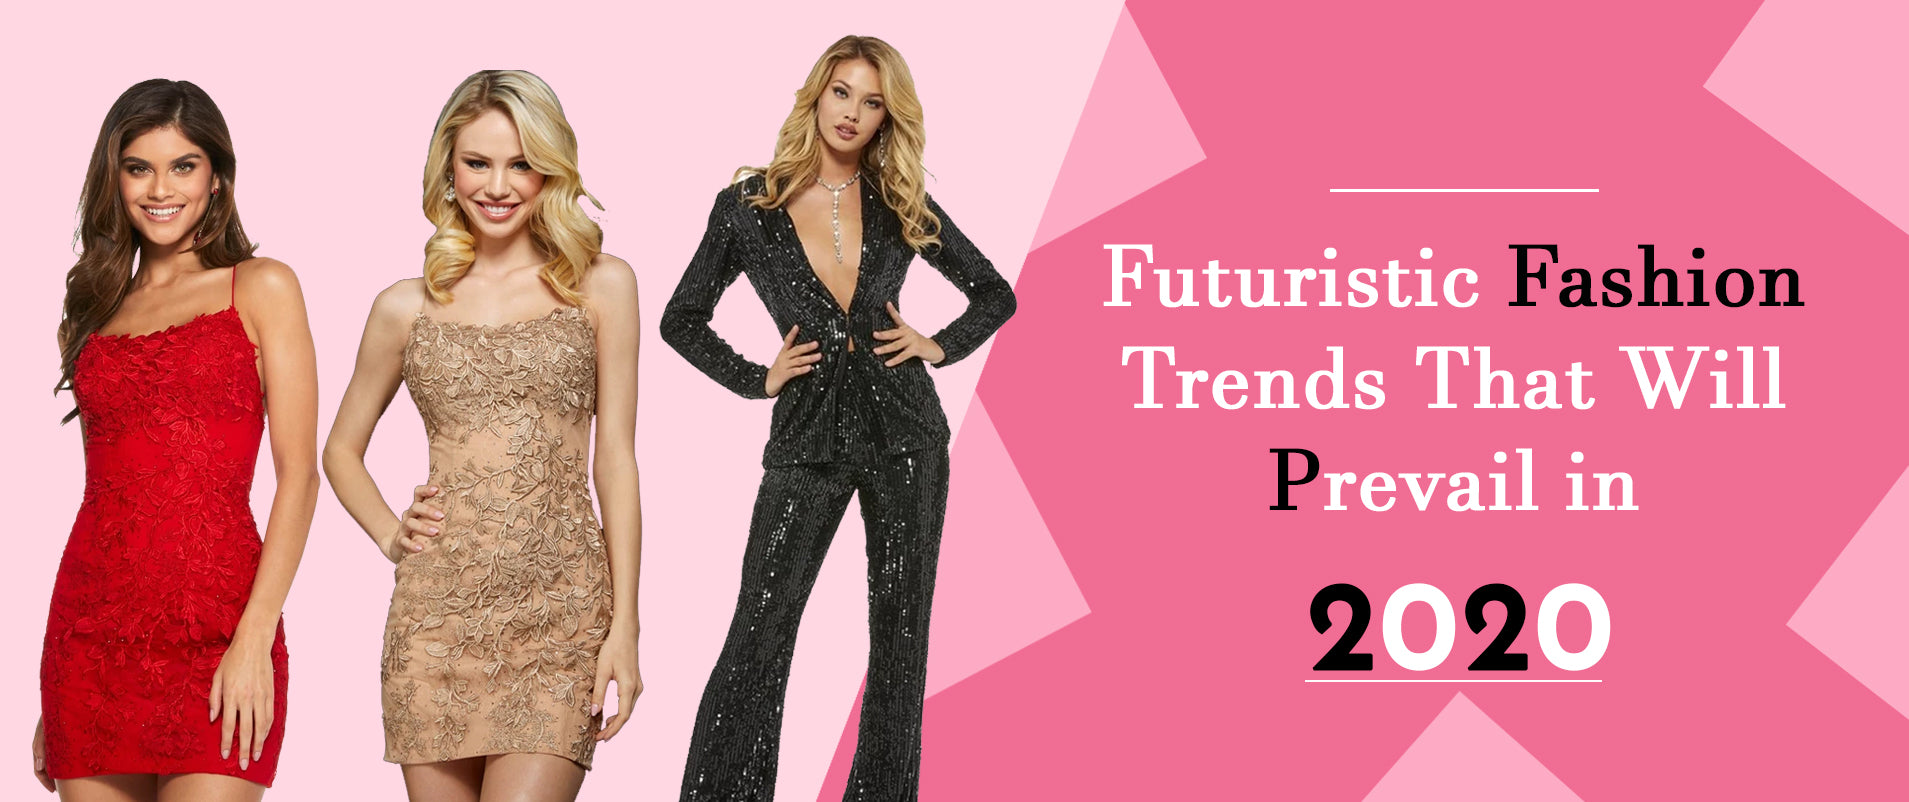 2020 Fashion Trends You Should Prepare For